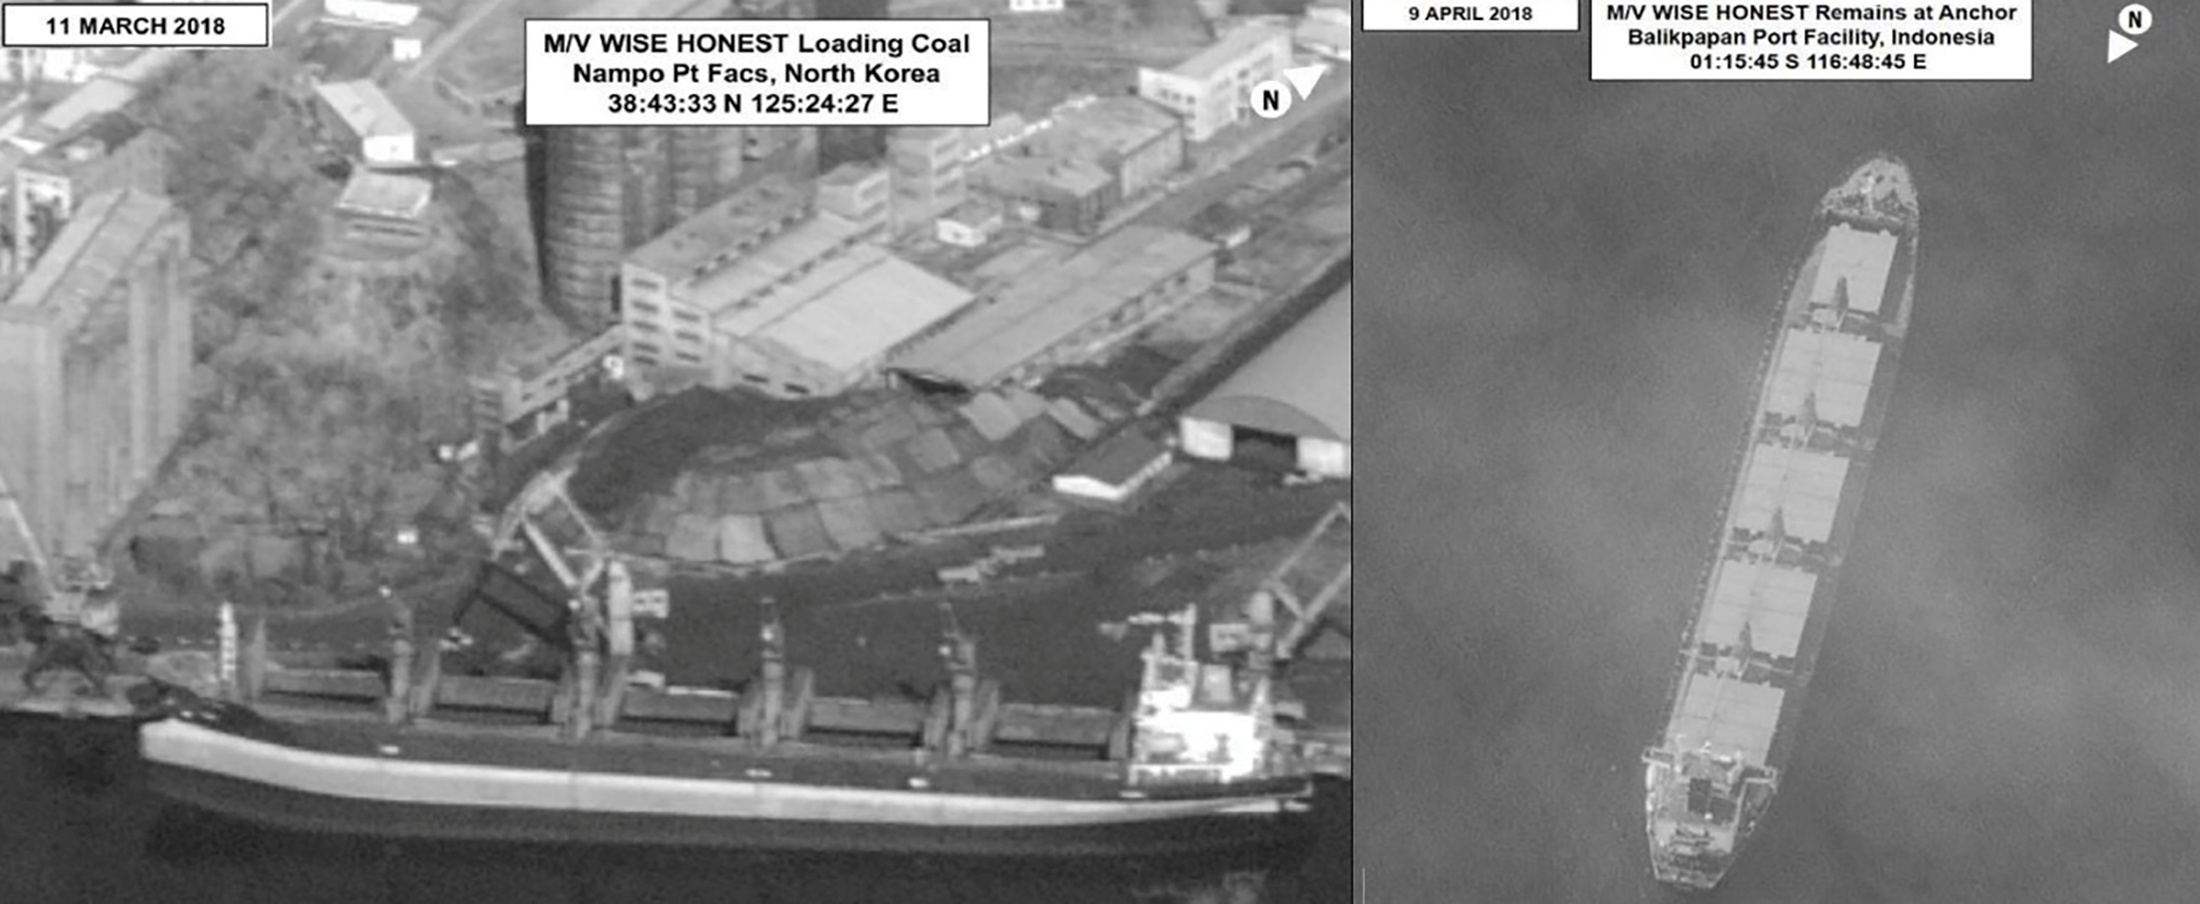 Surveillance images provided in a U.N. Security Council North Korea sanctions report show what is described as the North Korean vessel Wise Honest being loaded with coal and later in Indonesia